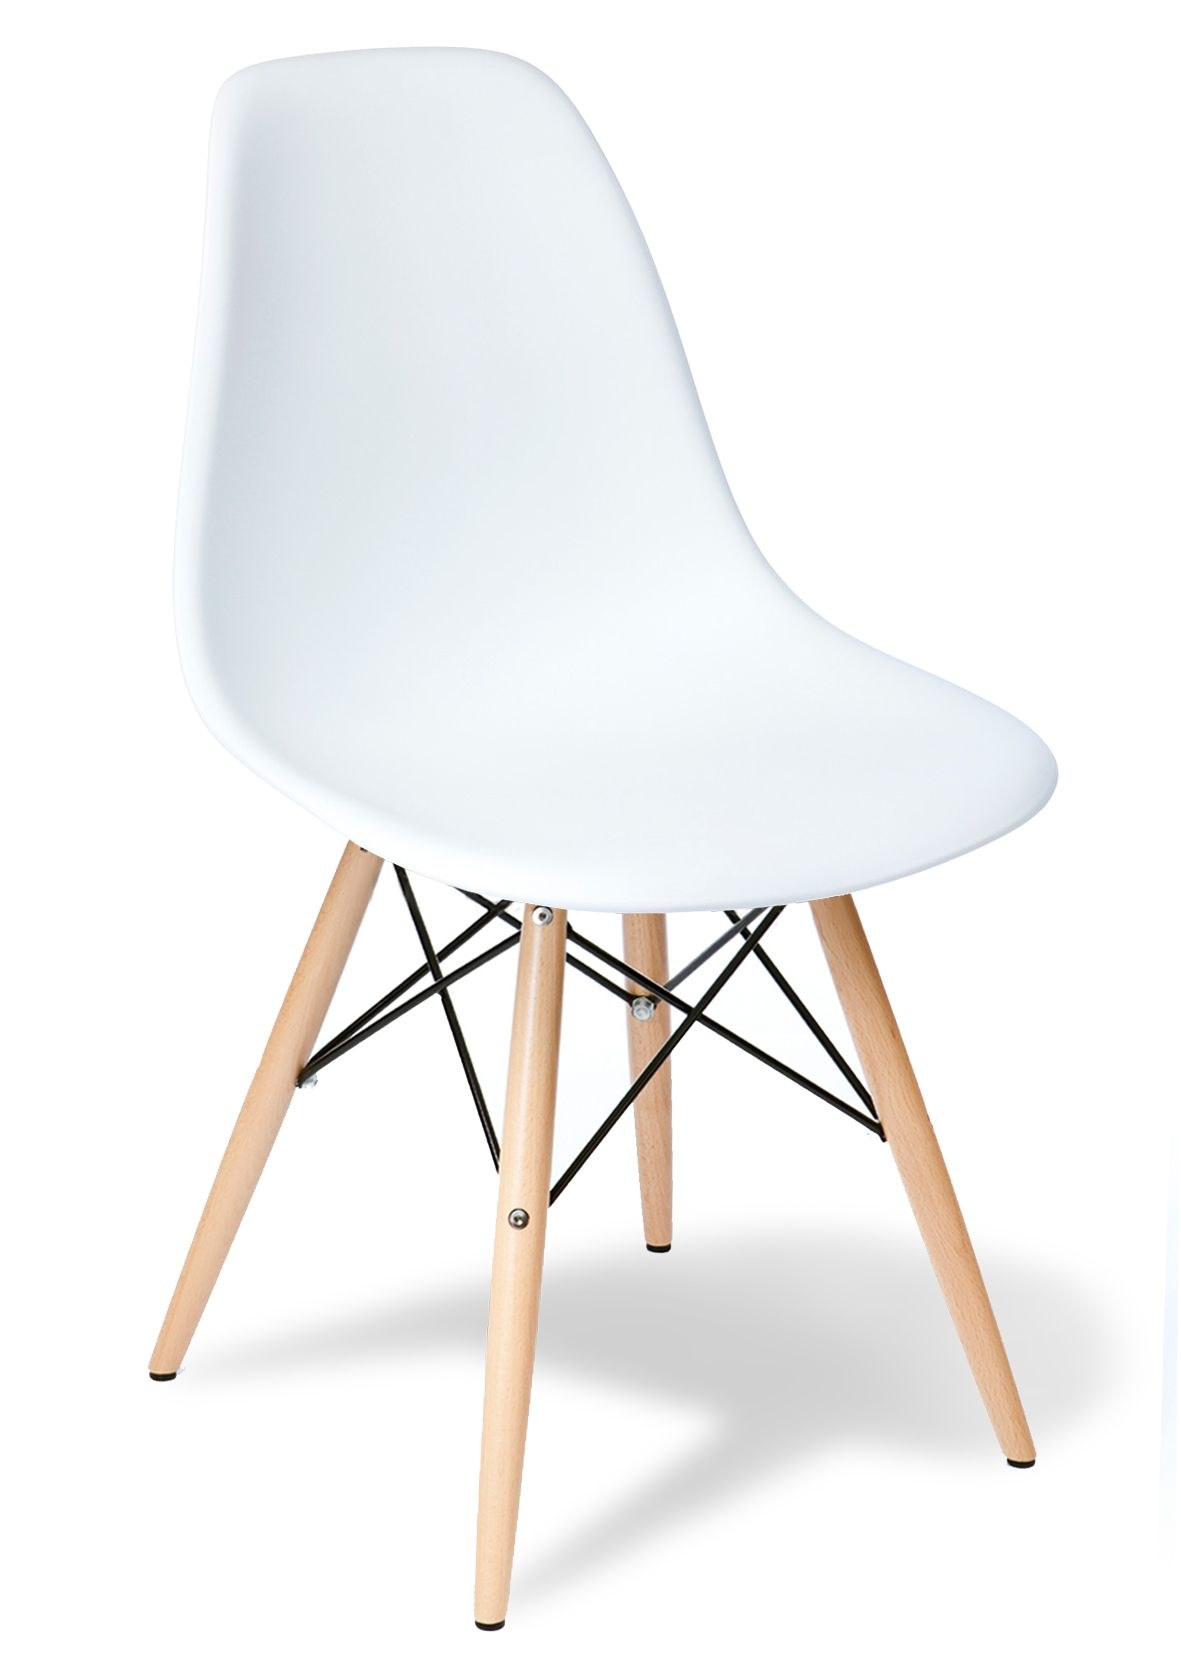 chaise eames dsw inspiration -high quality- | eames's | pinterest ... - Chaise Charles Eames Dsw